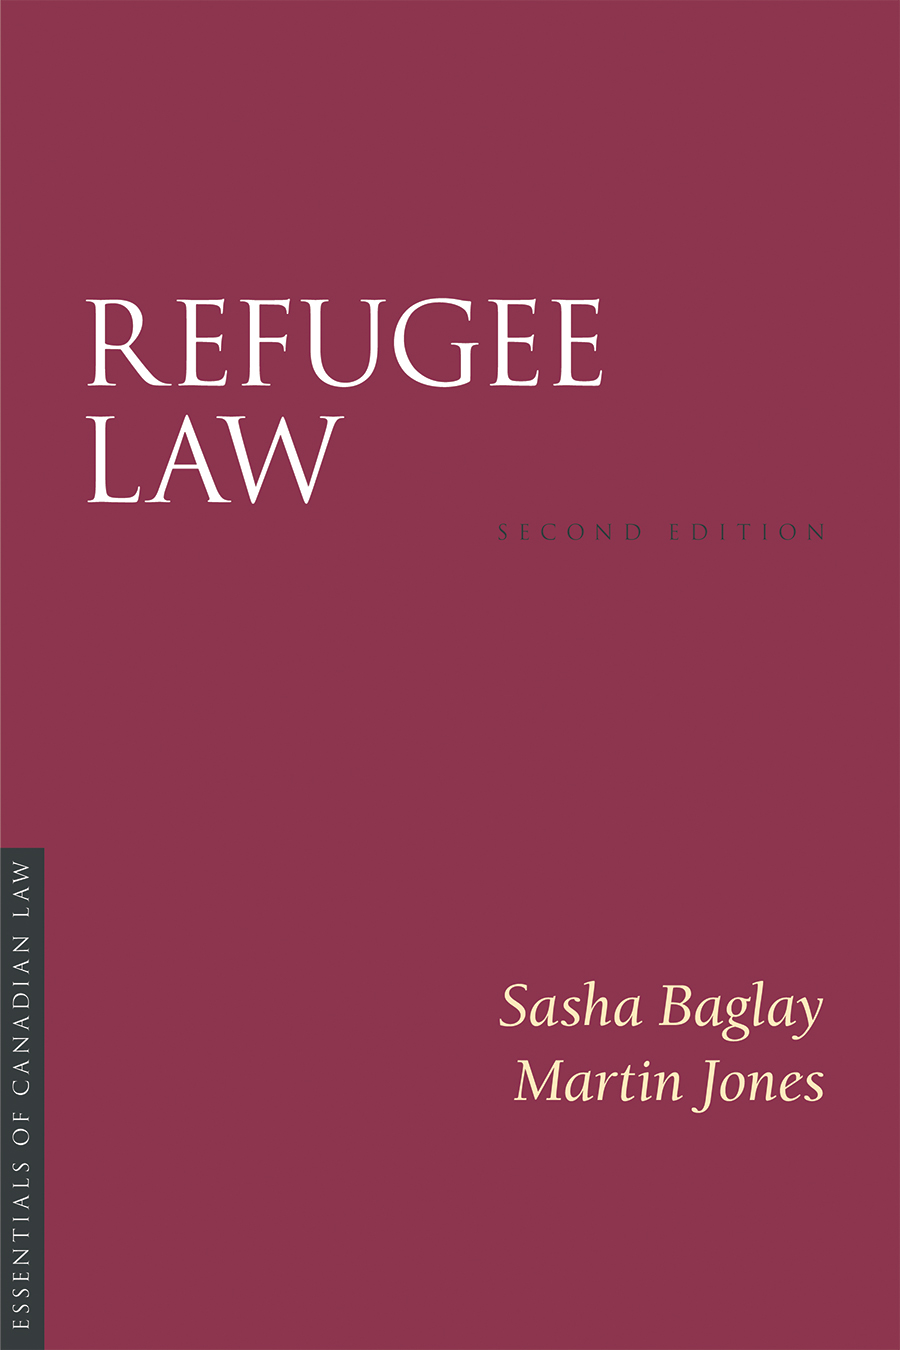 Book cover for Refugee Law by Sasha Baglay and Martin Jones. The cover is a solid burgundy colour with a simple type treatment in capital serif letters in white.